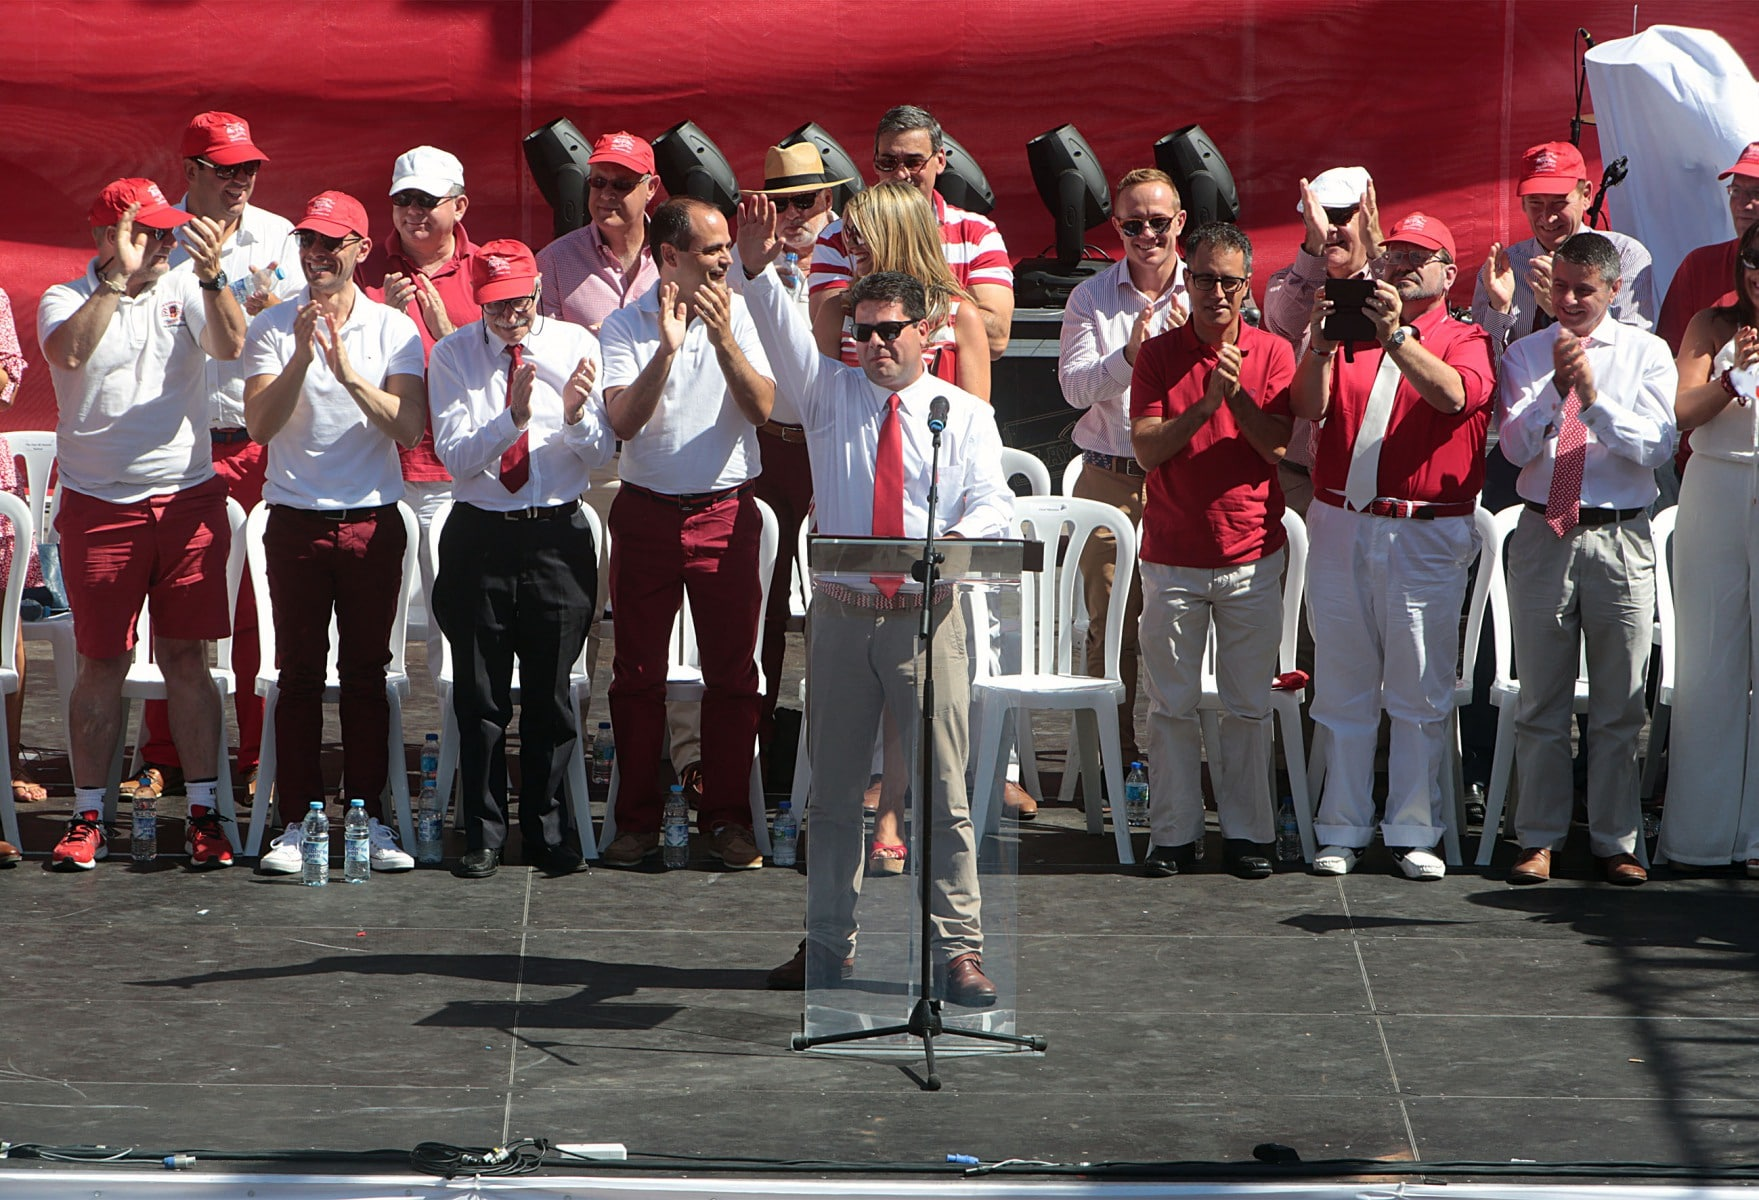 160910-national-day-gibraltar-2016-40_29605135895_o